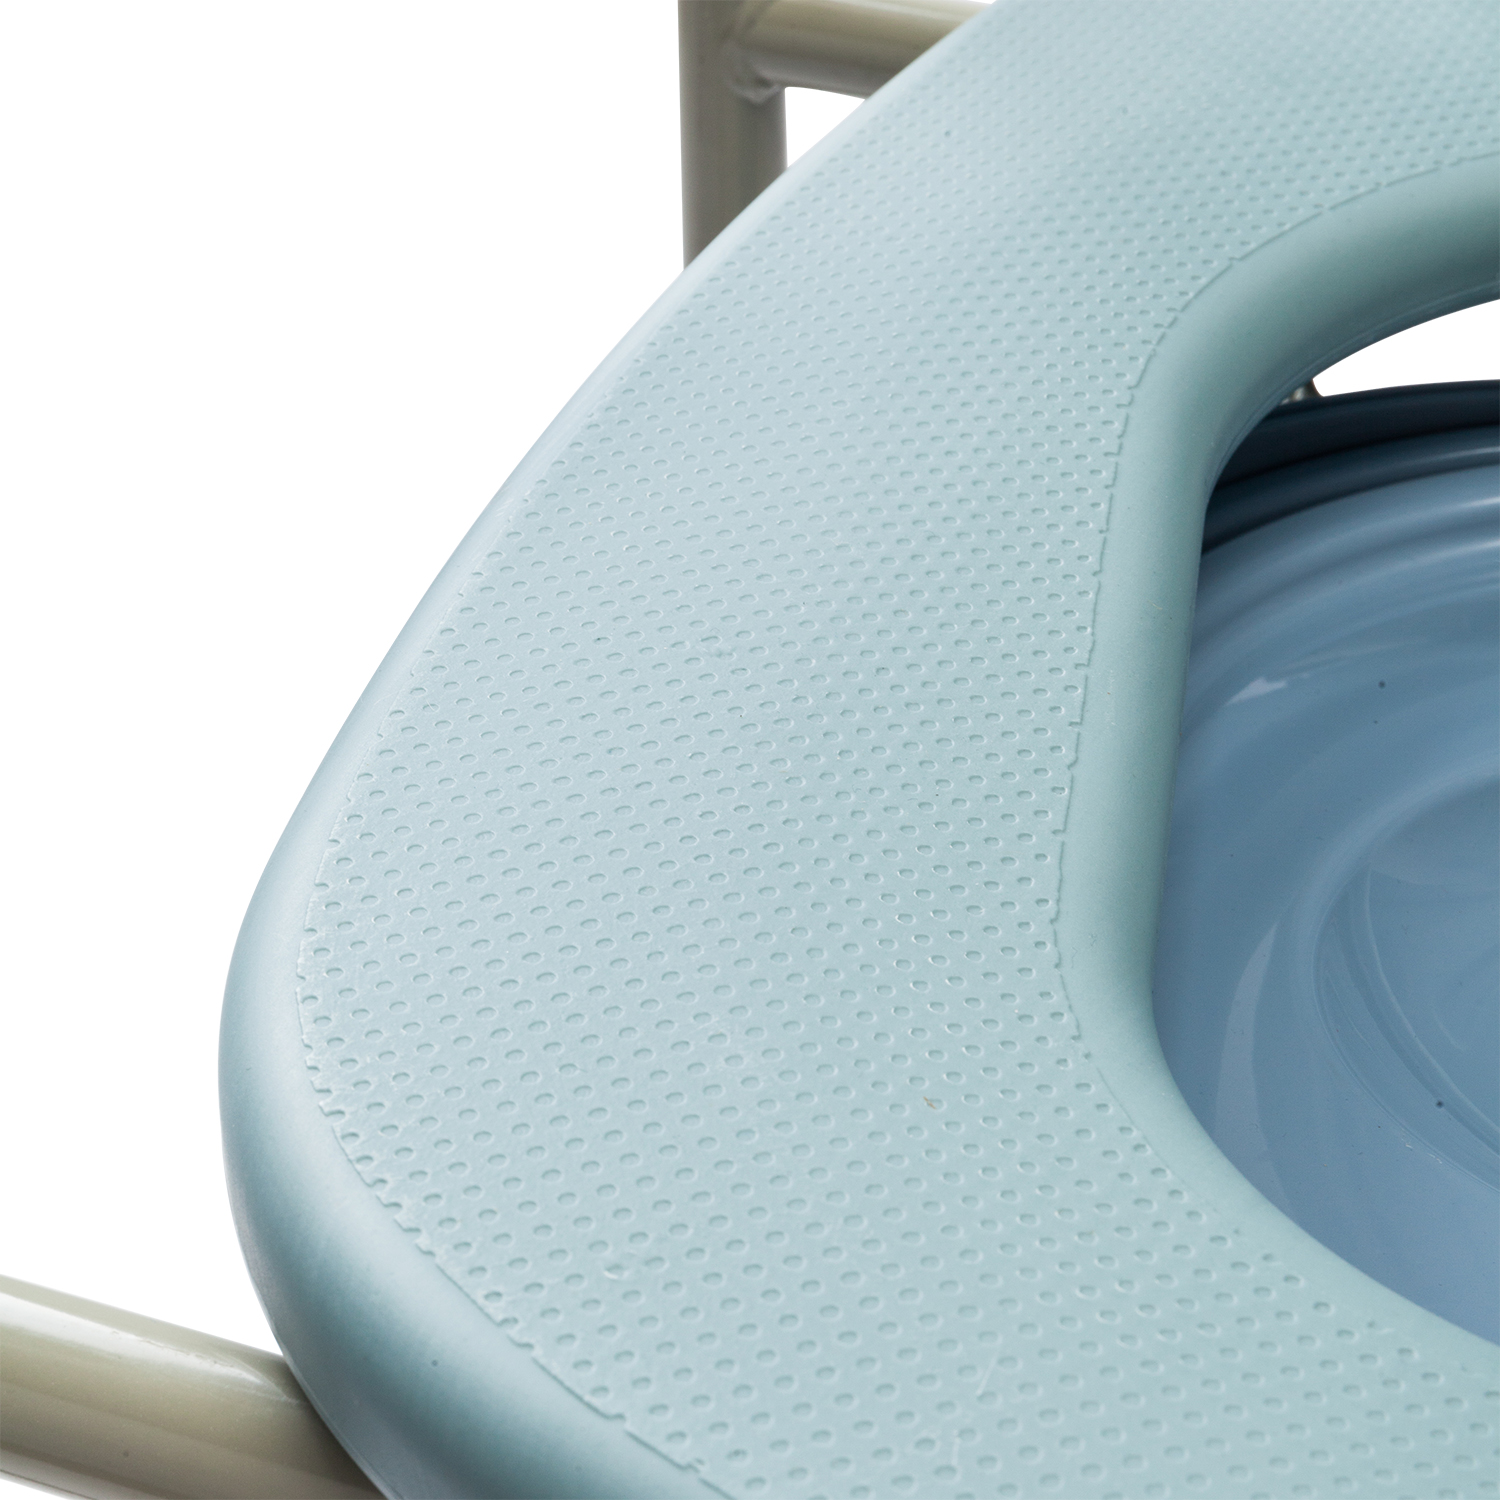 Folding Commode Chair Toilet Seat Safety Bedside Chair with Cover | eBay